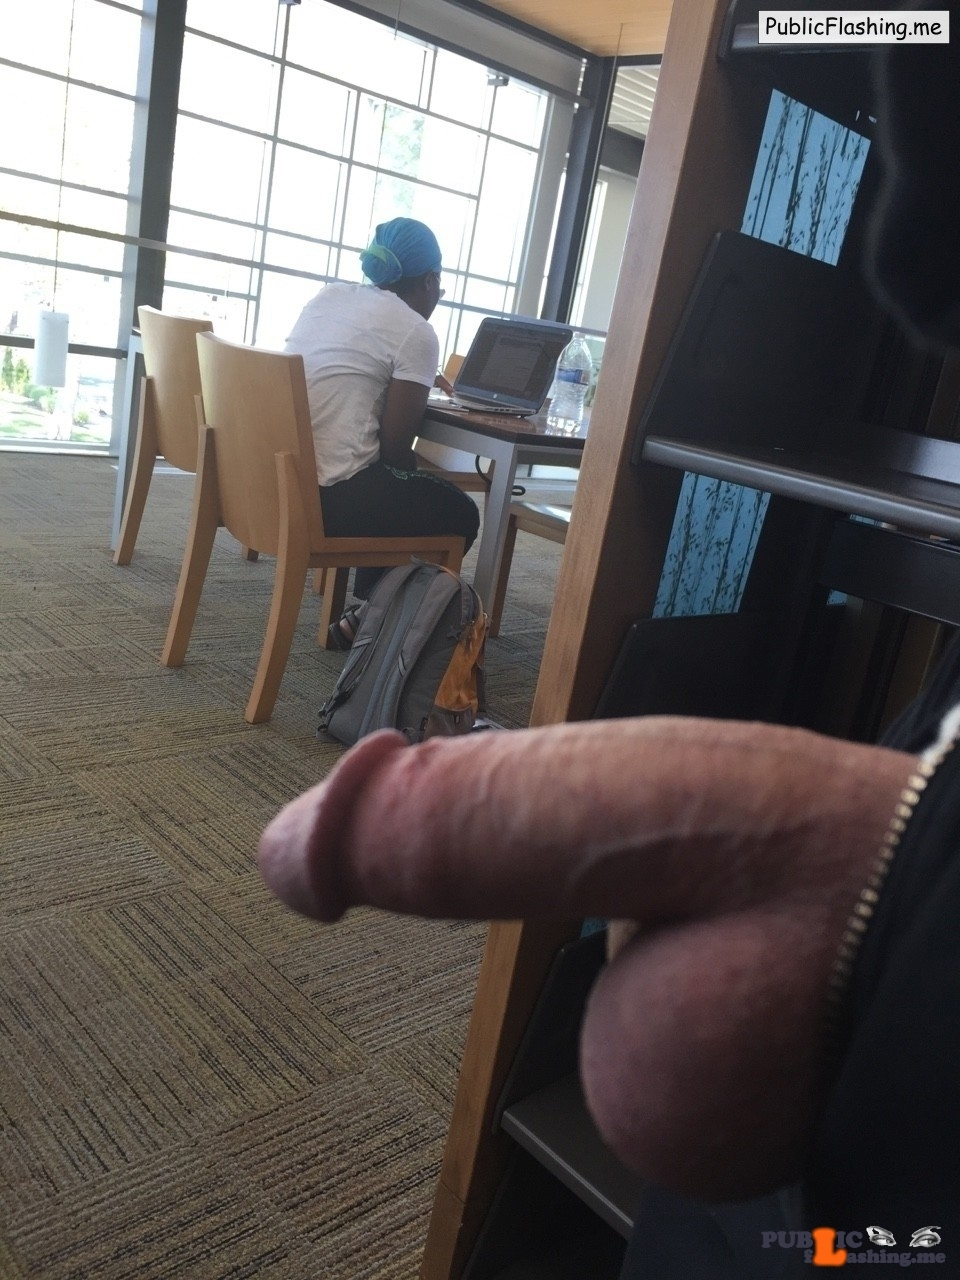 Big dick public flash